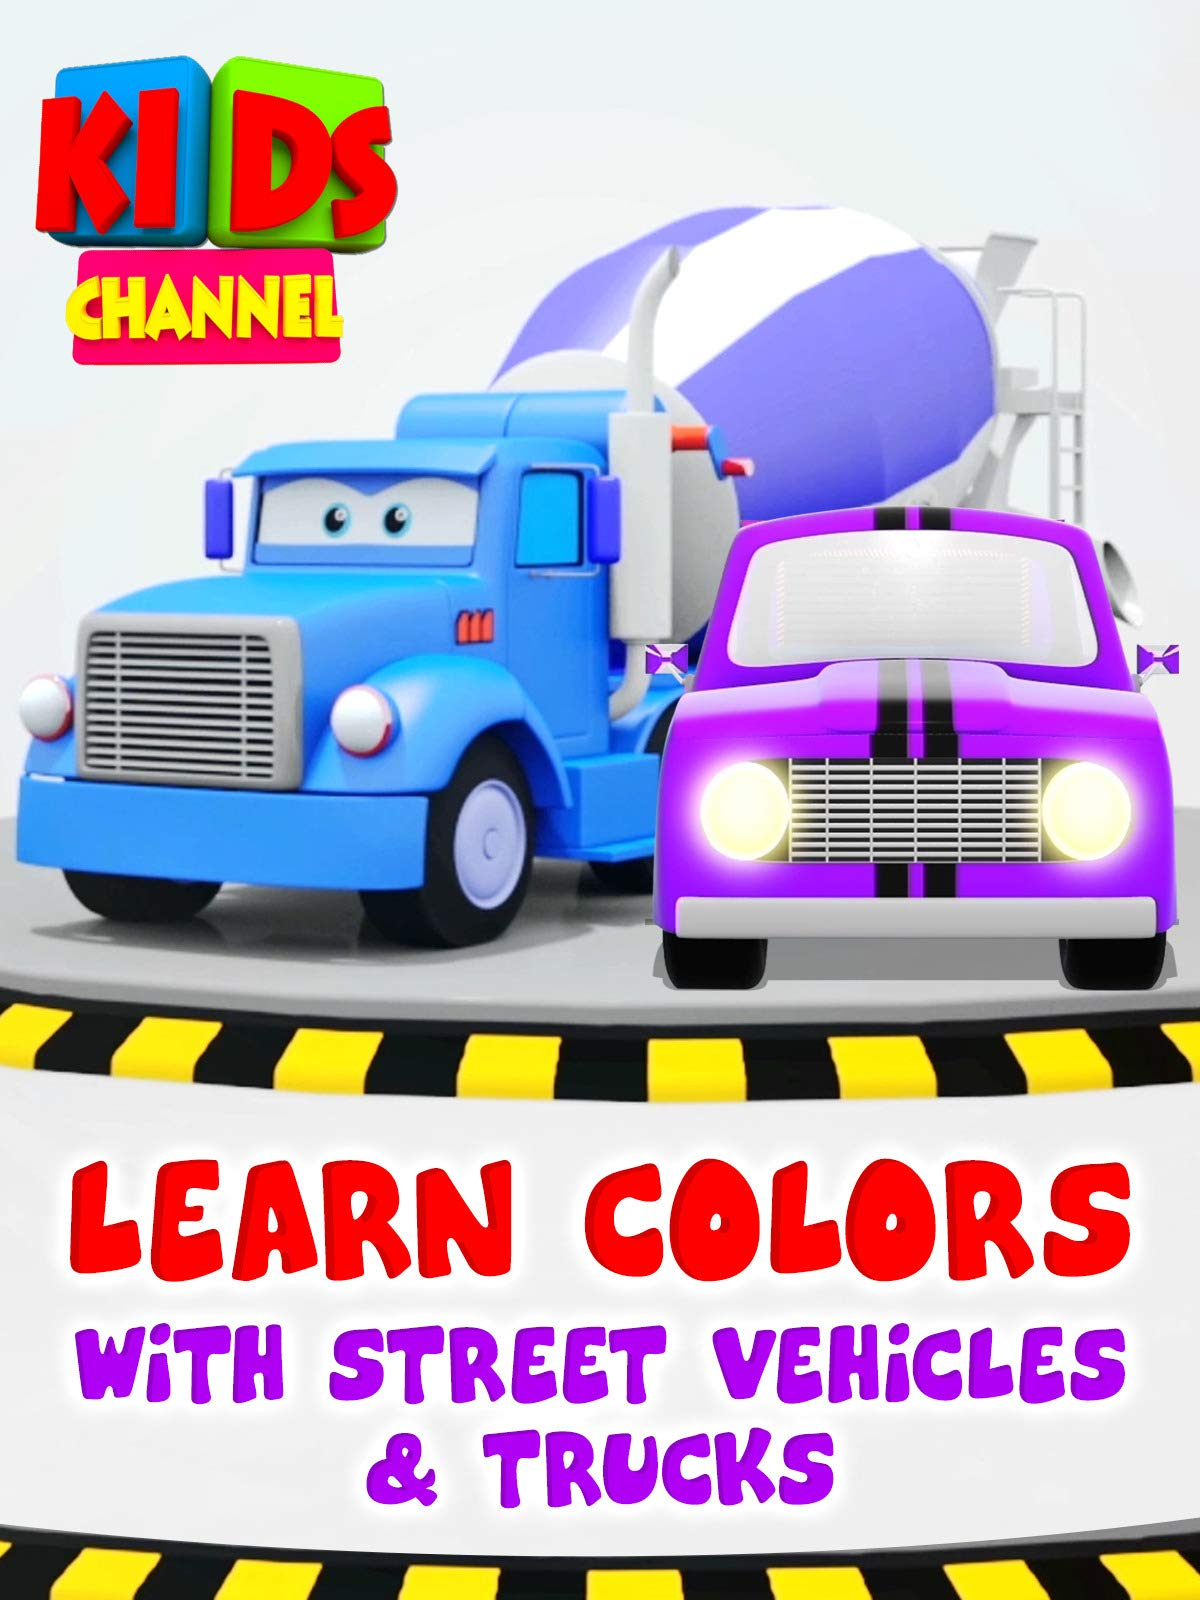 Learn Colors with Street Vehicles & Trucks